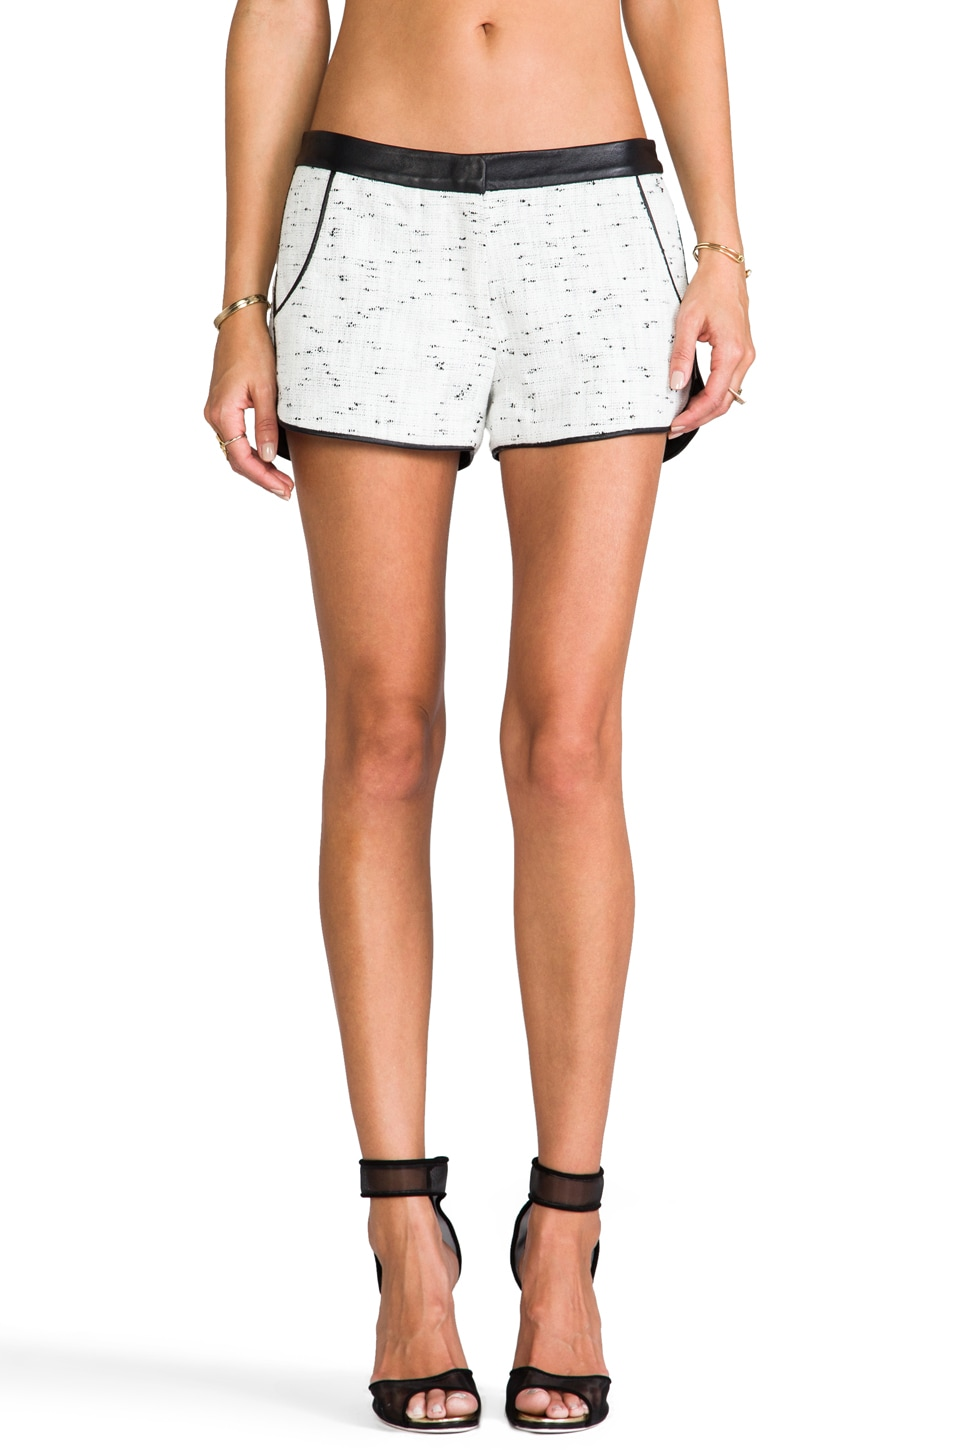 Dolce Vita Mercer Shorts in Black/White